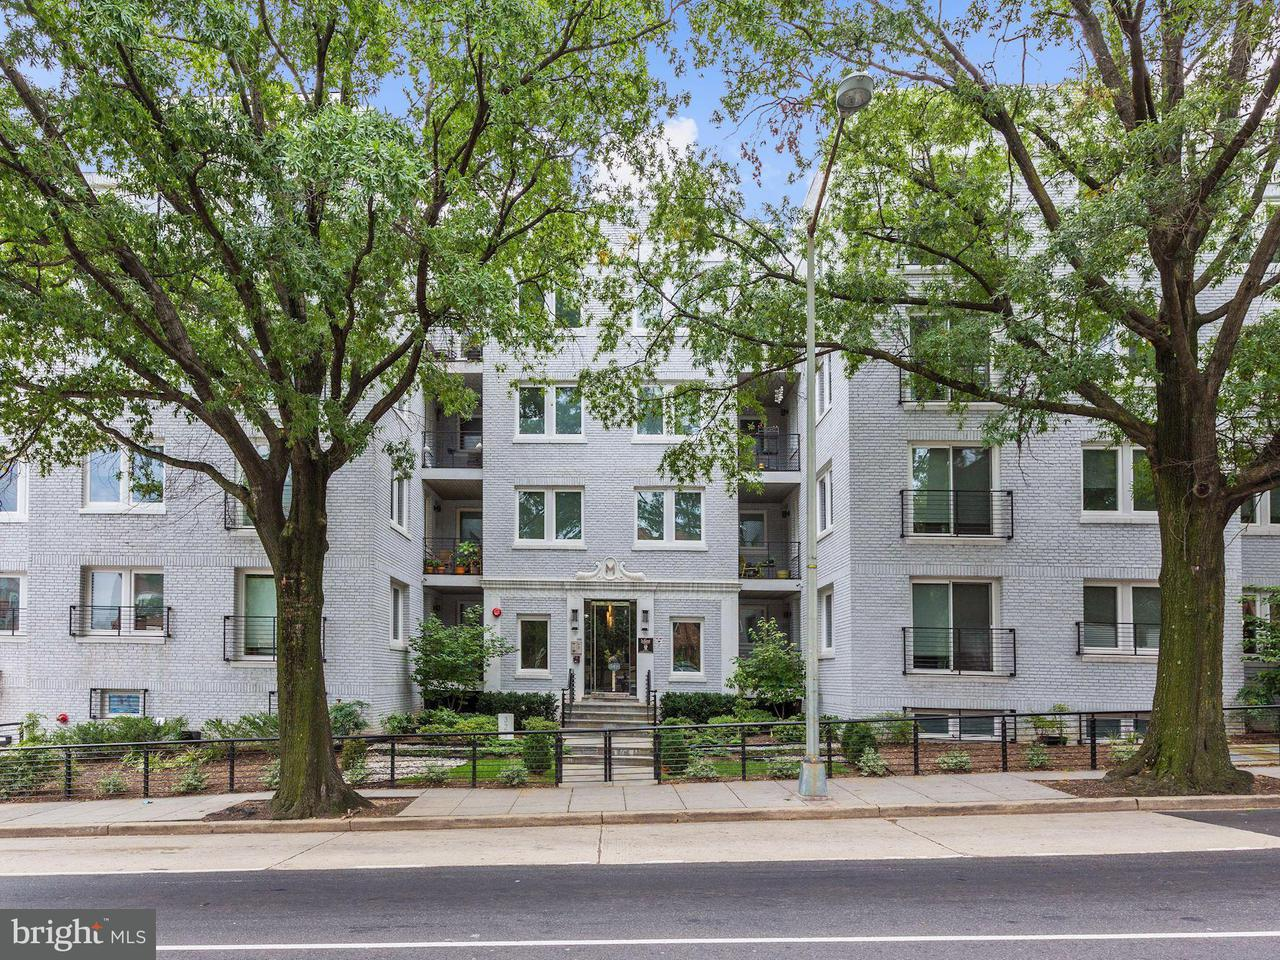 Condominium for Sale at 329 Rhode Island Ave NE #203 Washington, District Of Columbia 20002 United States